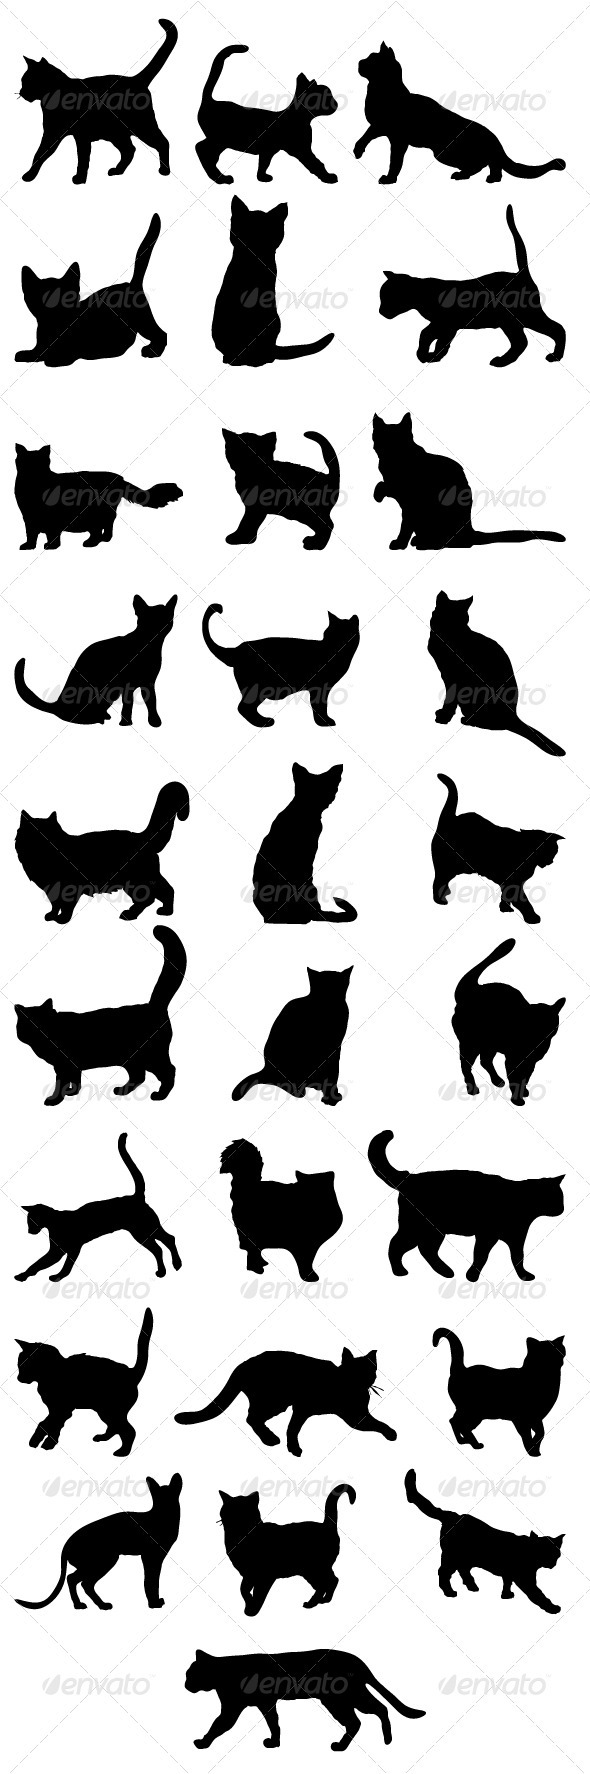 GraphicRiver Cats Silhouettes Big Pack 2 3393009